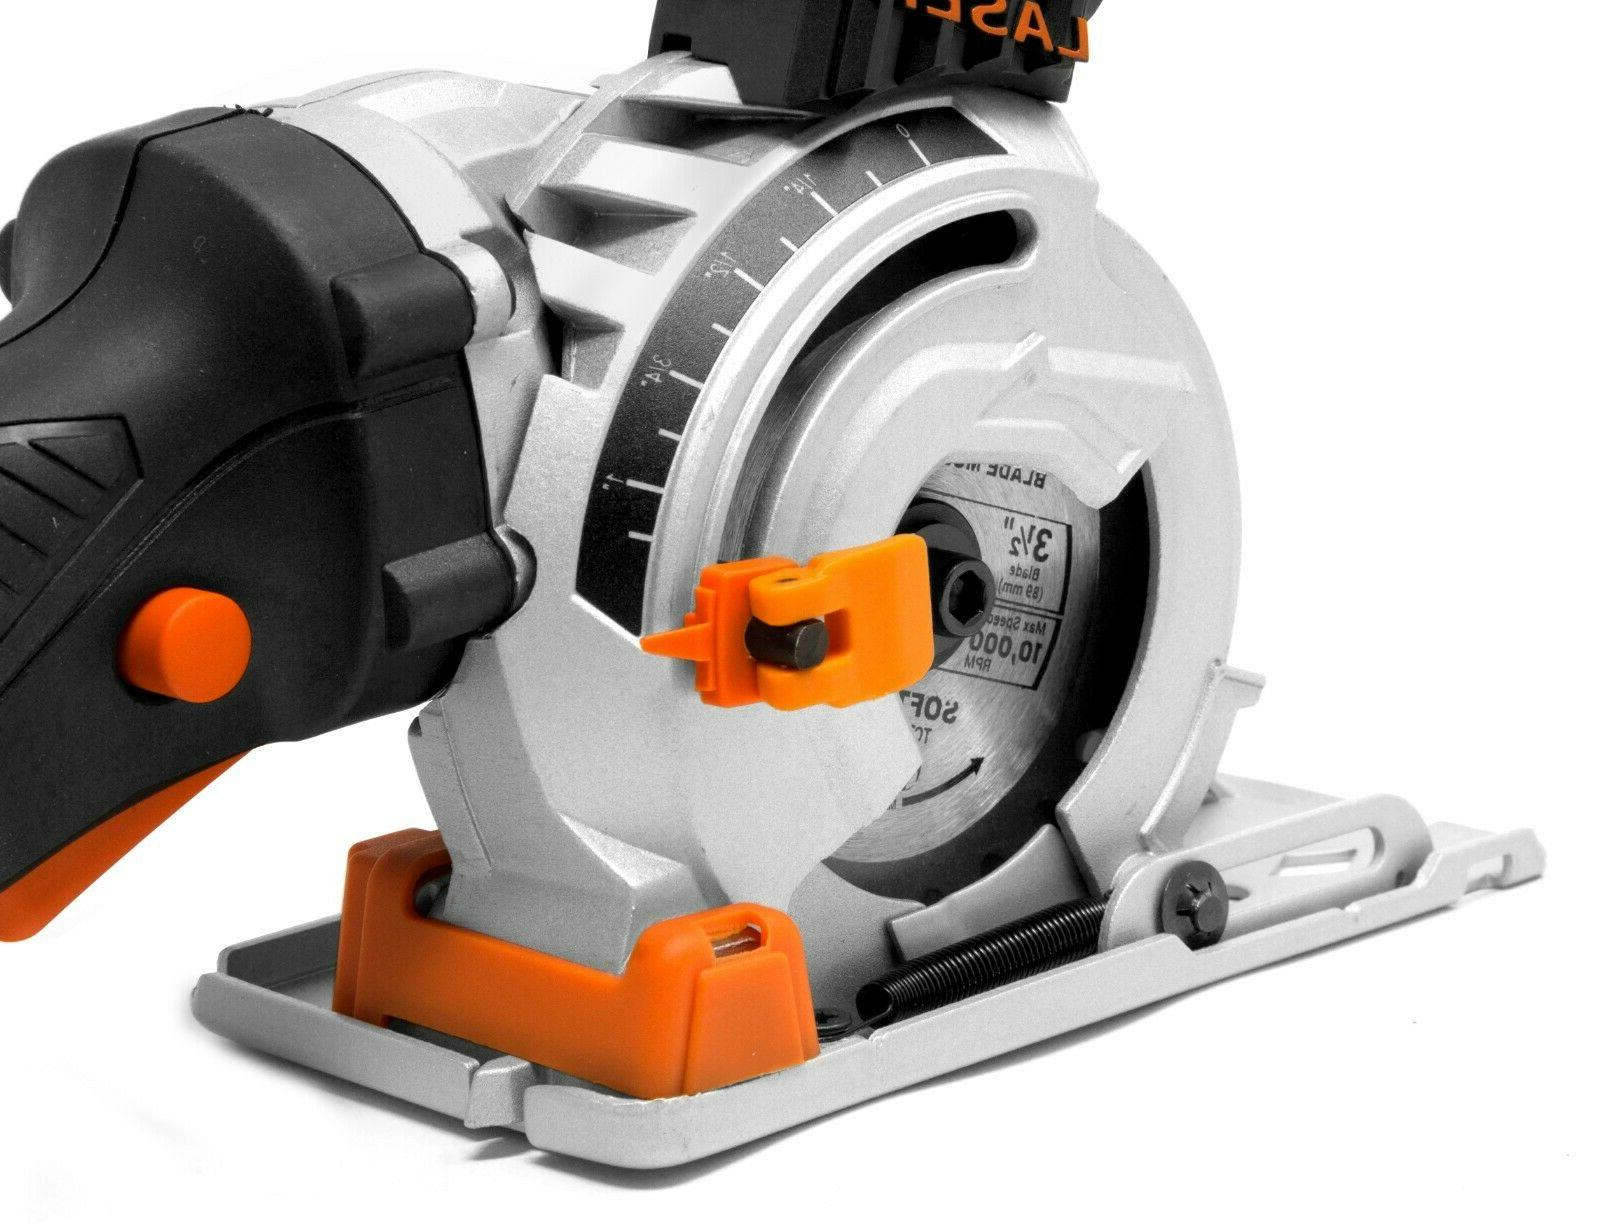 WEN 3620 Plunge Compact Saw w/ Case, and Blades